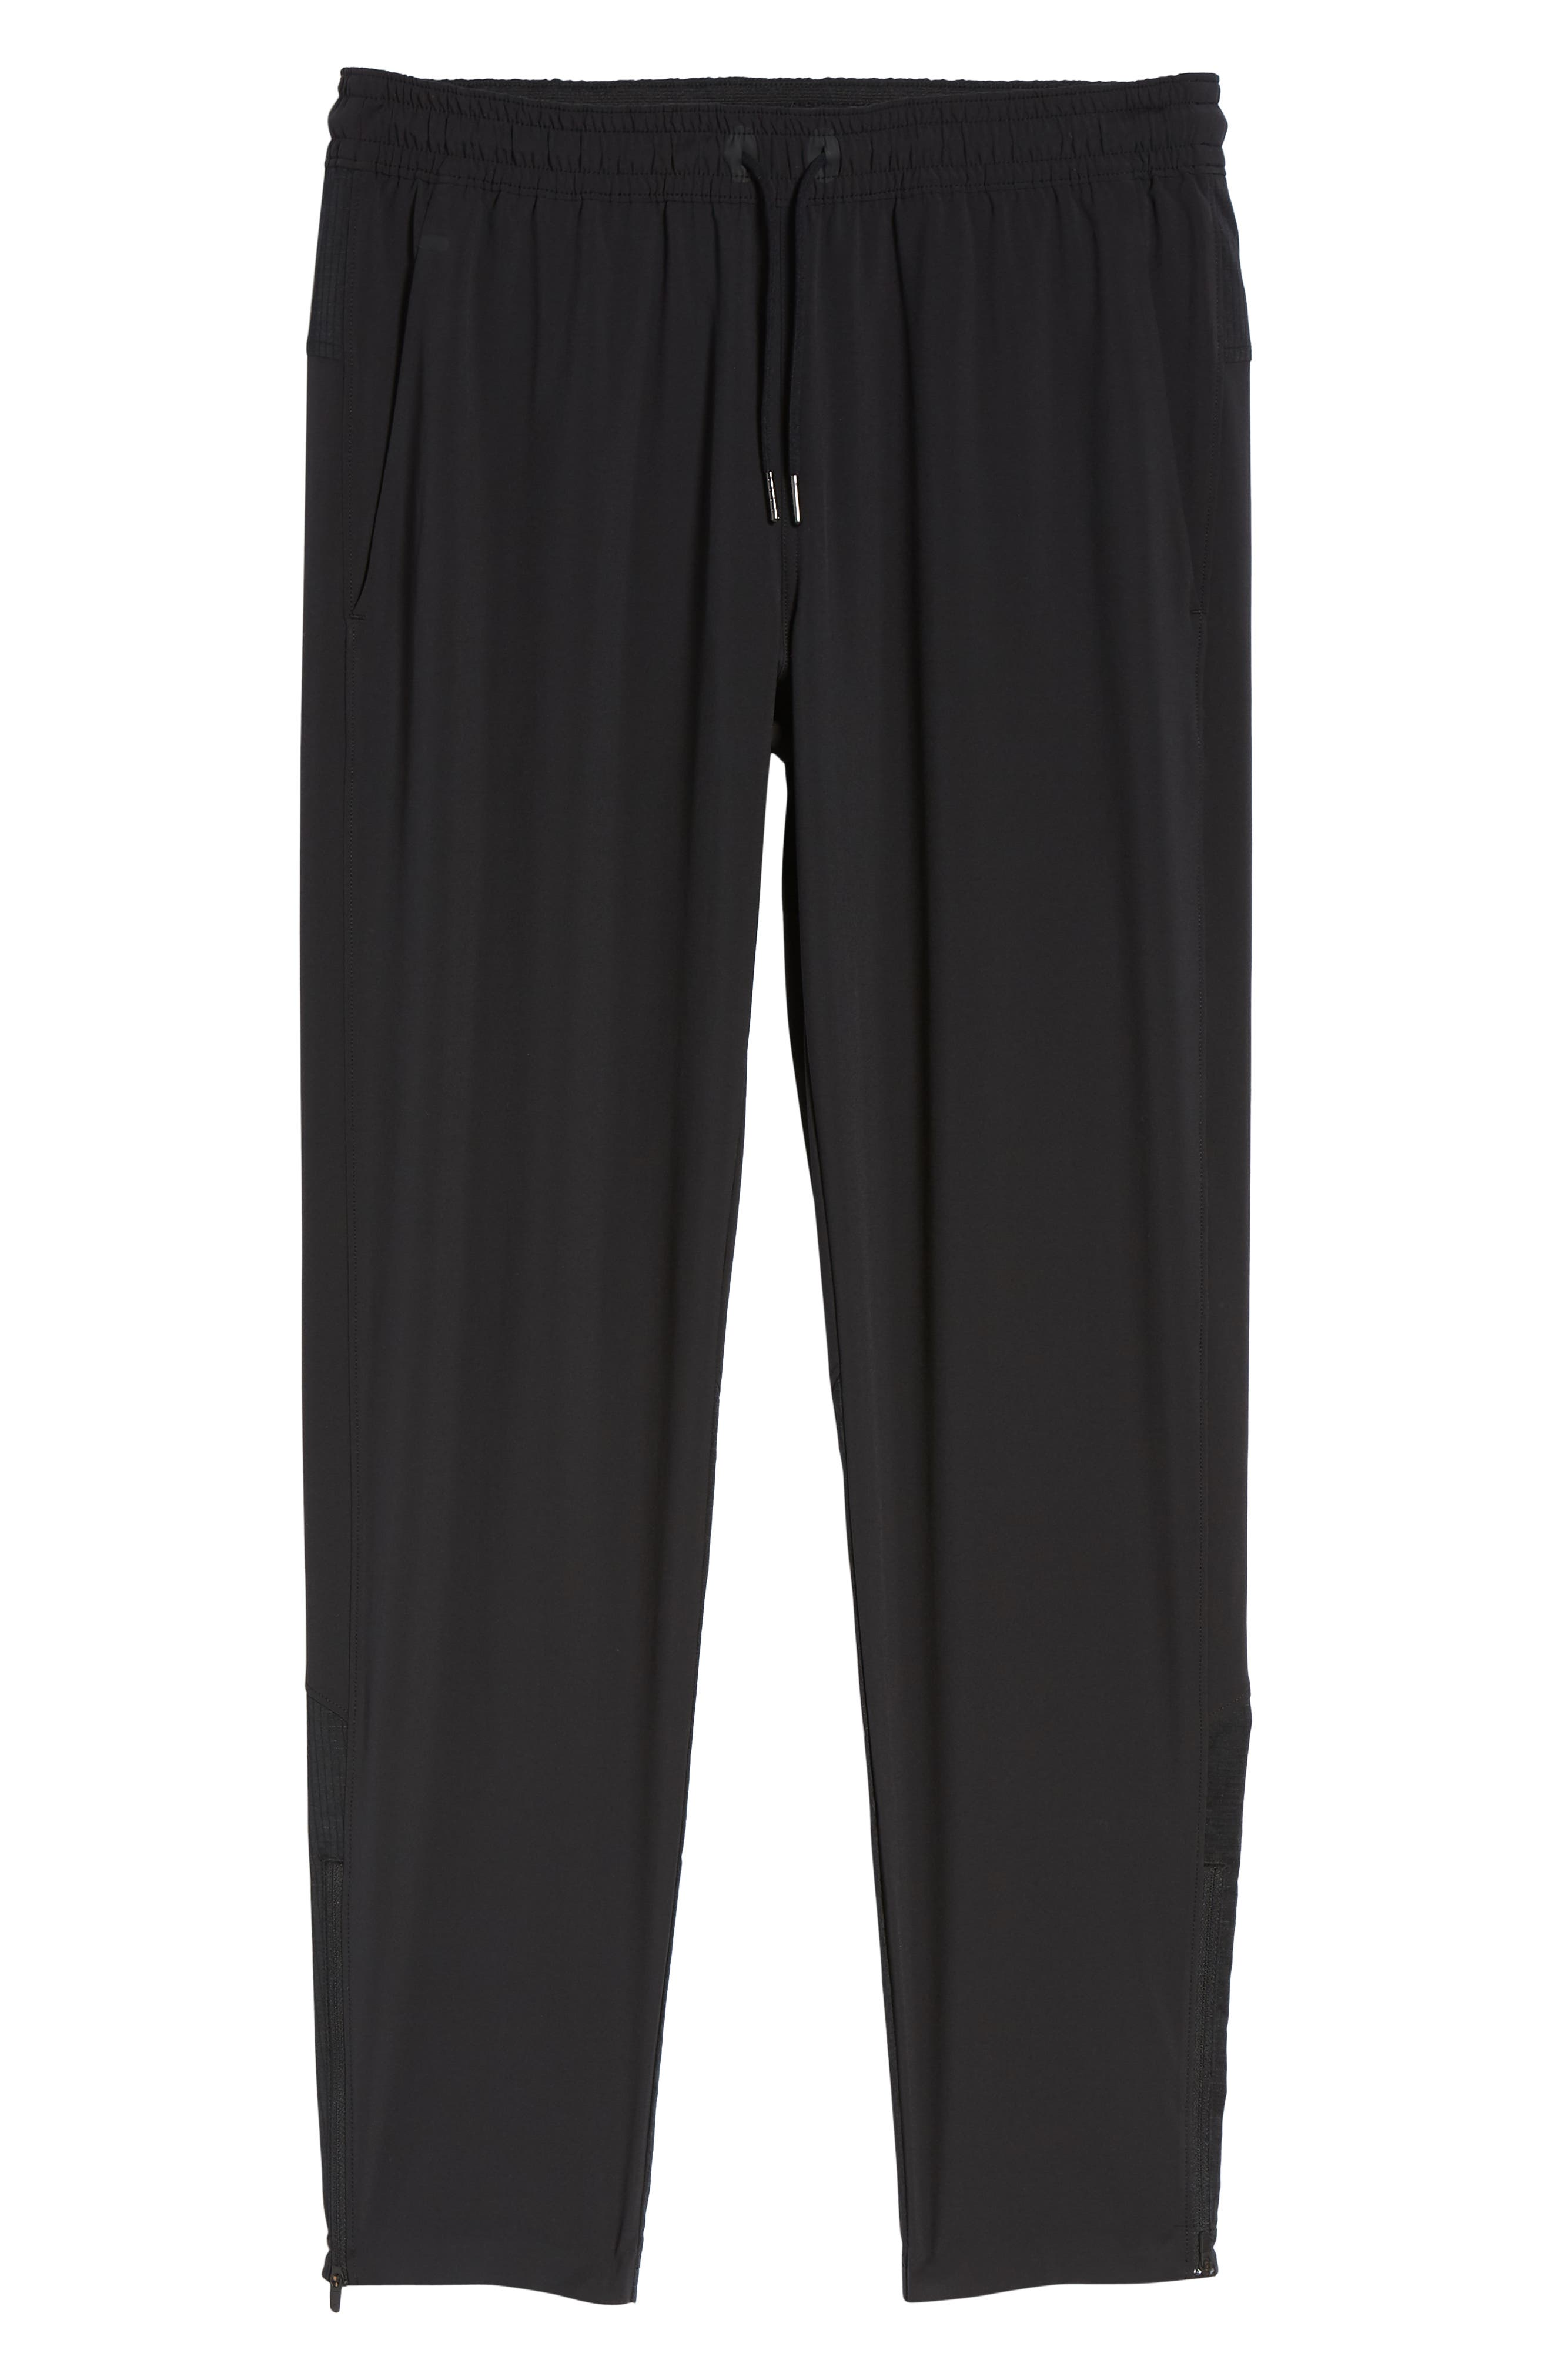 Graphite Tapered Athletic Pants,                             Alternate thumbnail 6, color,                             BLACK